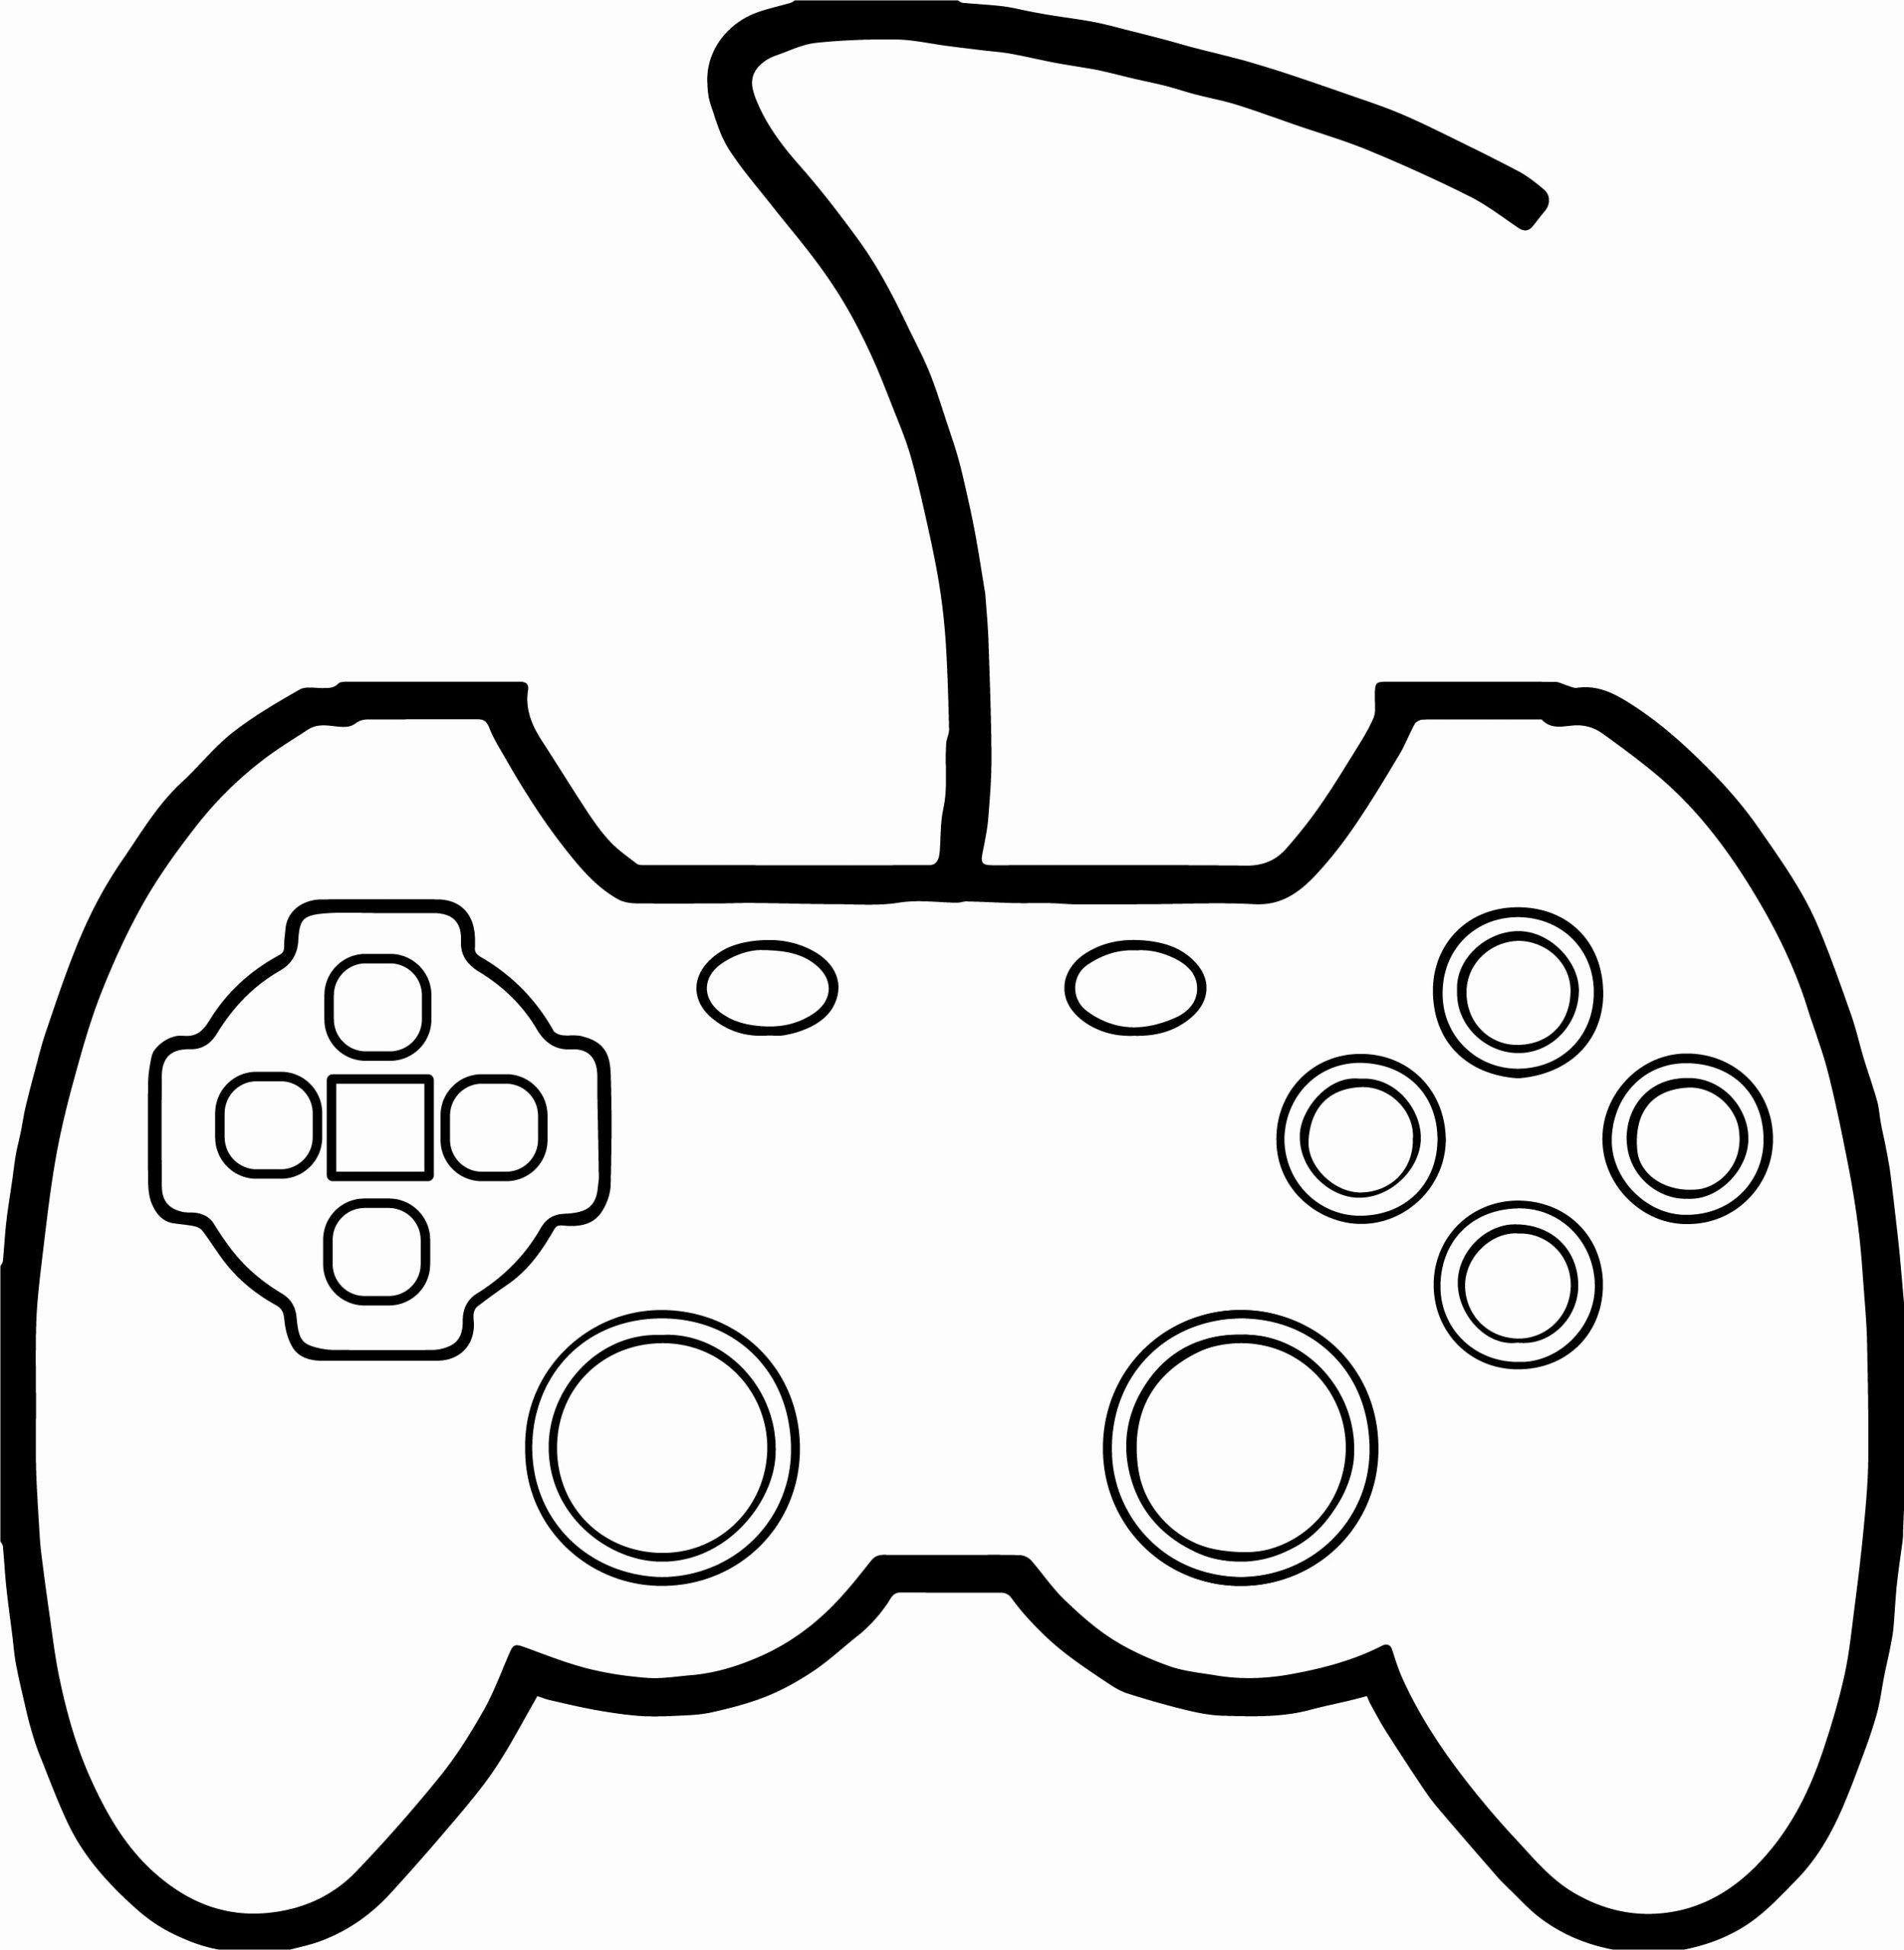 Video Game Coloring Pages New Game Controller Coloring Page Sketch Coloring Page In 2020 Moon Coloring Pages Coloring Pages Free Online Coloring